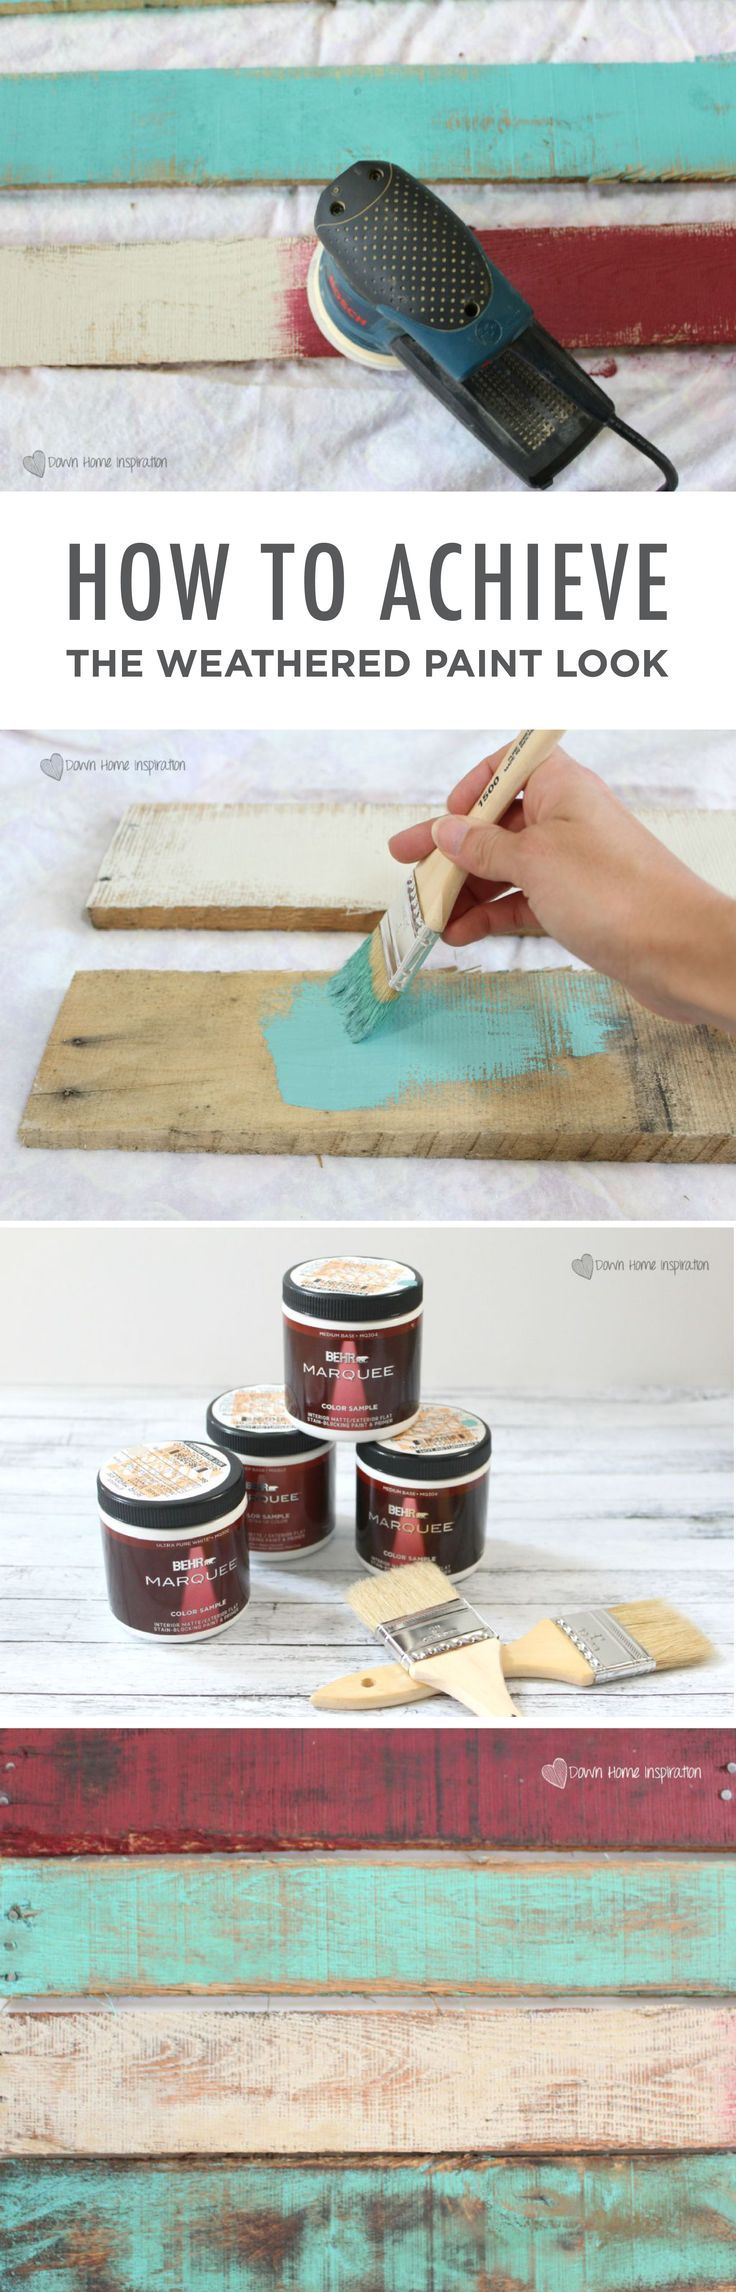 How To Achieve The Weathered Paint Look Weathered Paint Woodworking Projects Diy Diy Woodworking